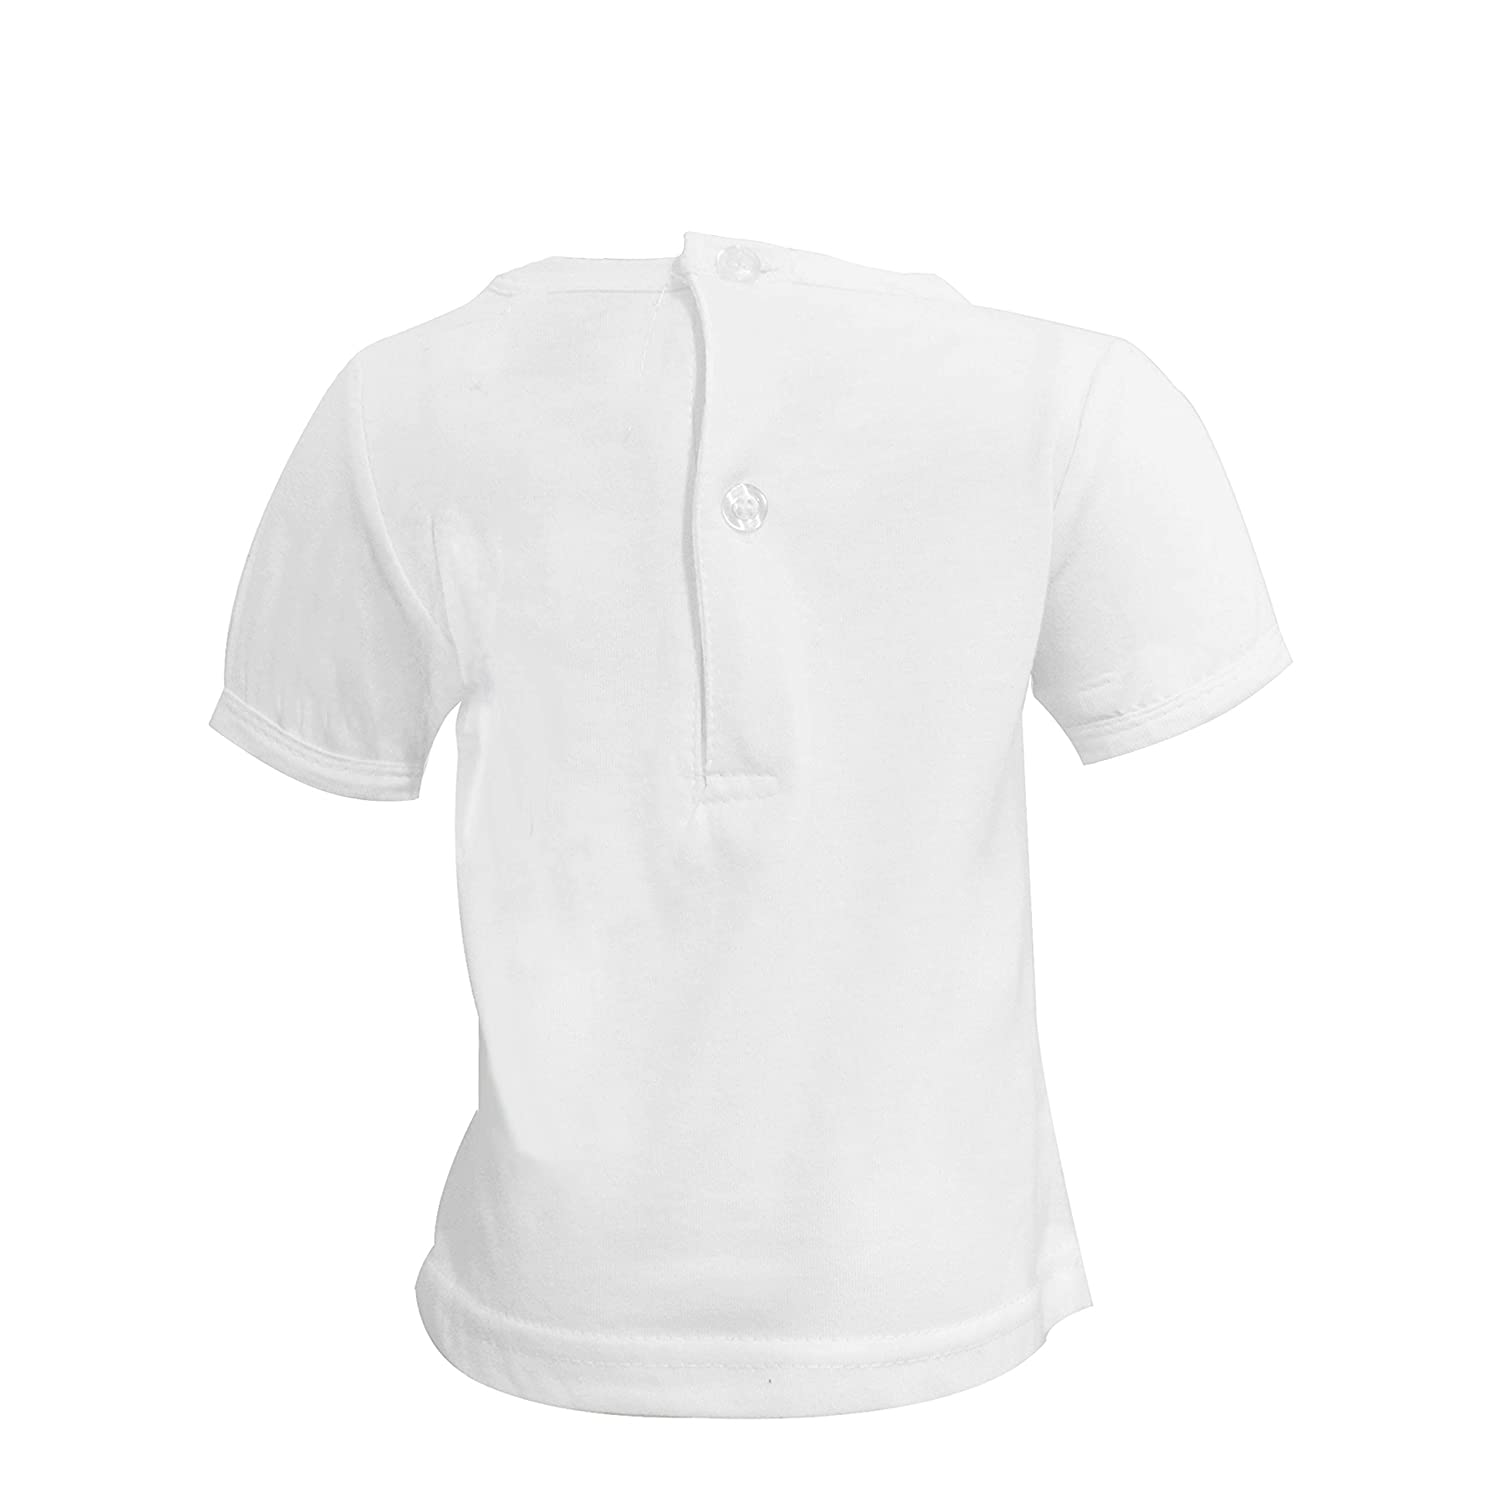 T Shirt White Solid Short and Long Sleeve Cotton Jersey with Comfy Crew Neck Unisex for Girls or Boys